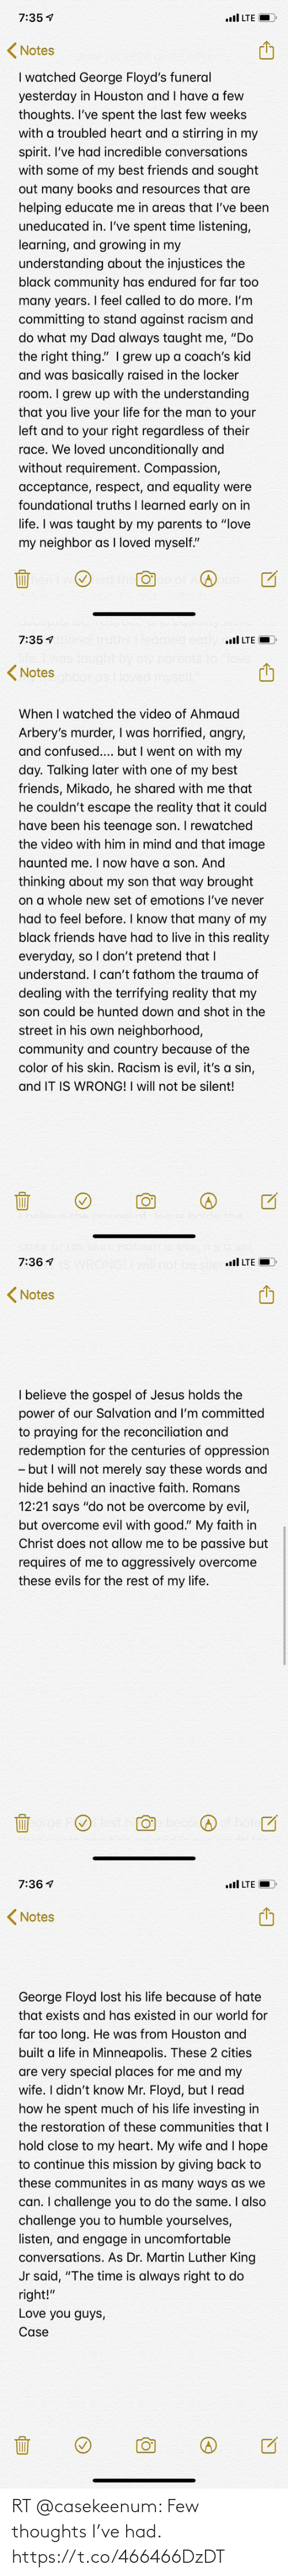 thoughts: RT @casekeenum: Few thoughts I've had. https://t.co/466466DzDT